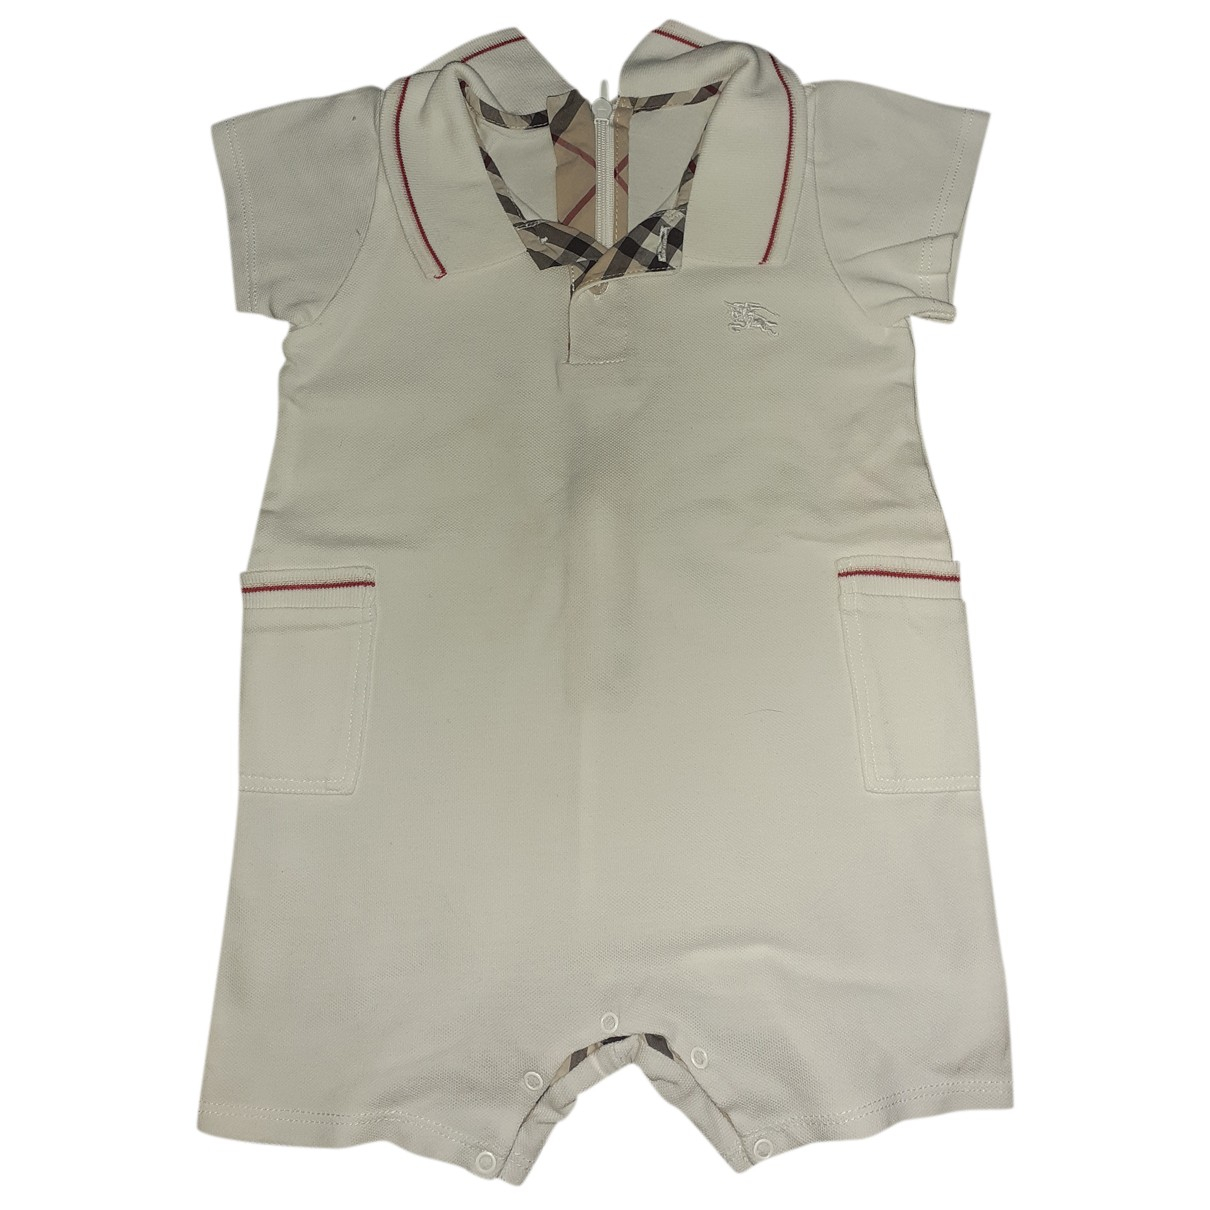 Burberry N White Cotton Outfits for Kids 9 months - up to 71cm FR